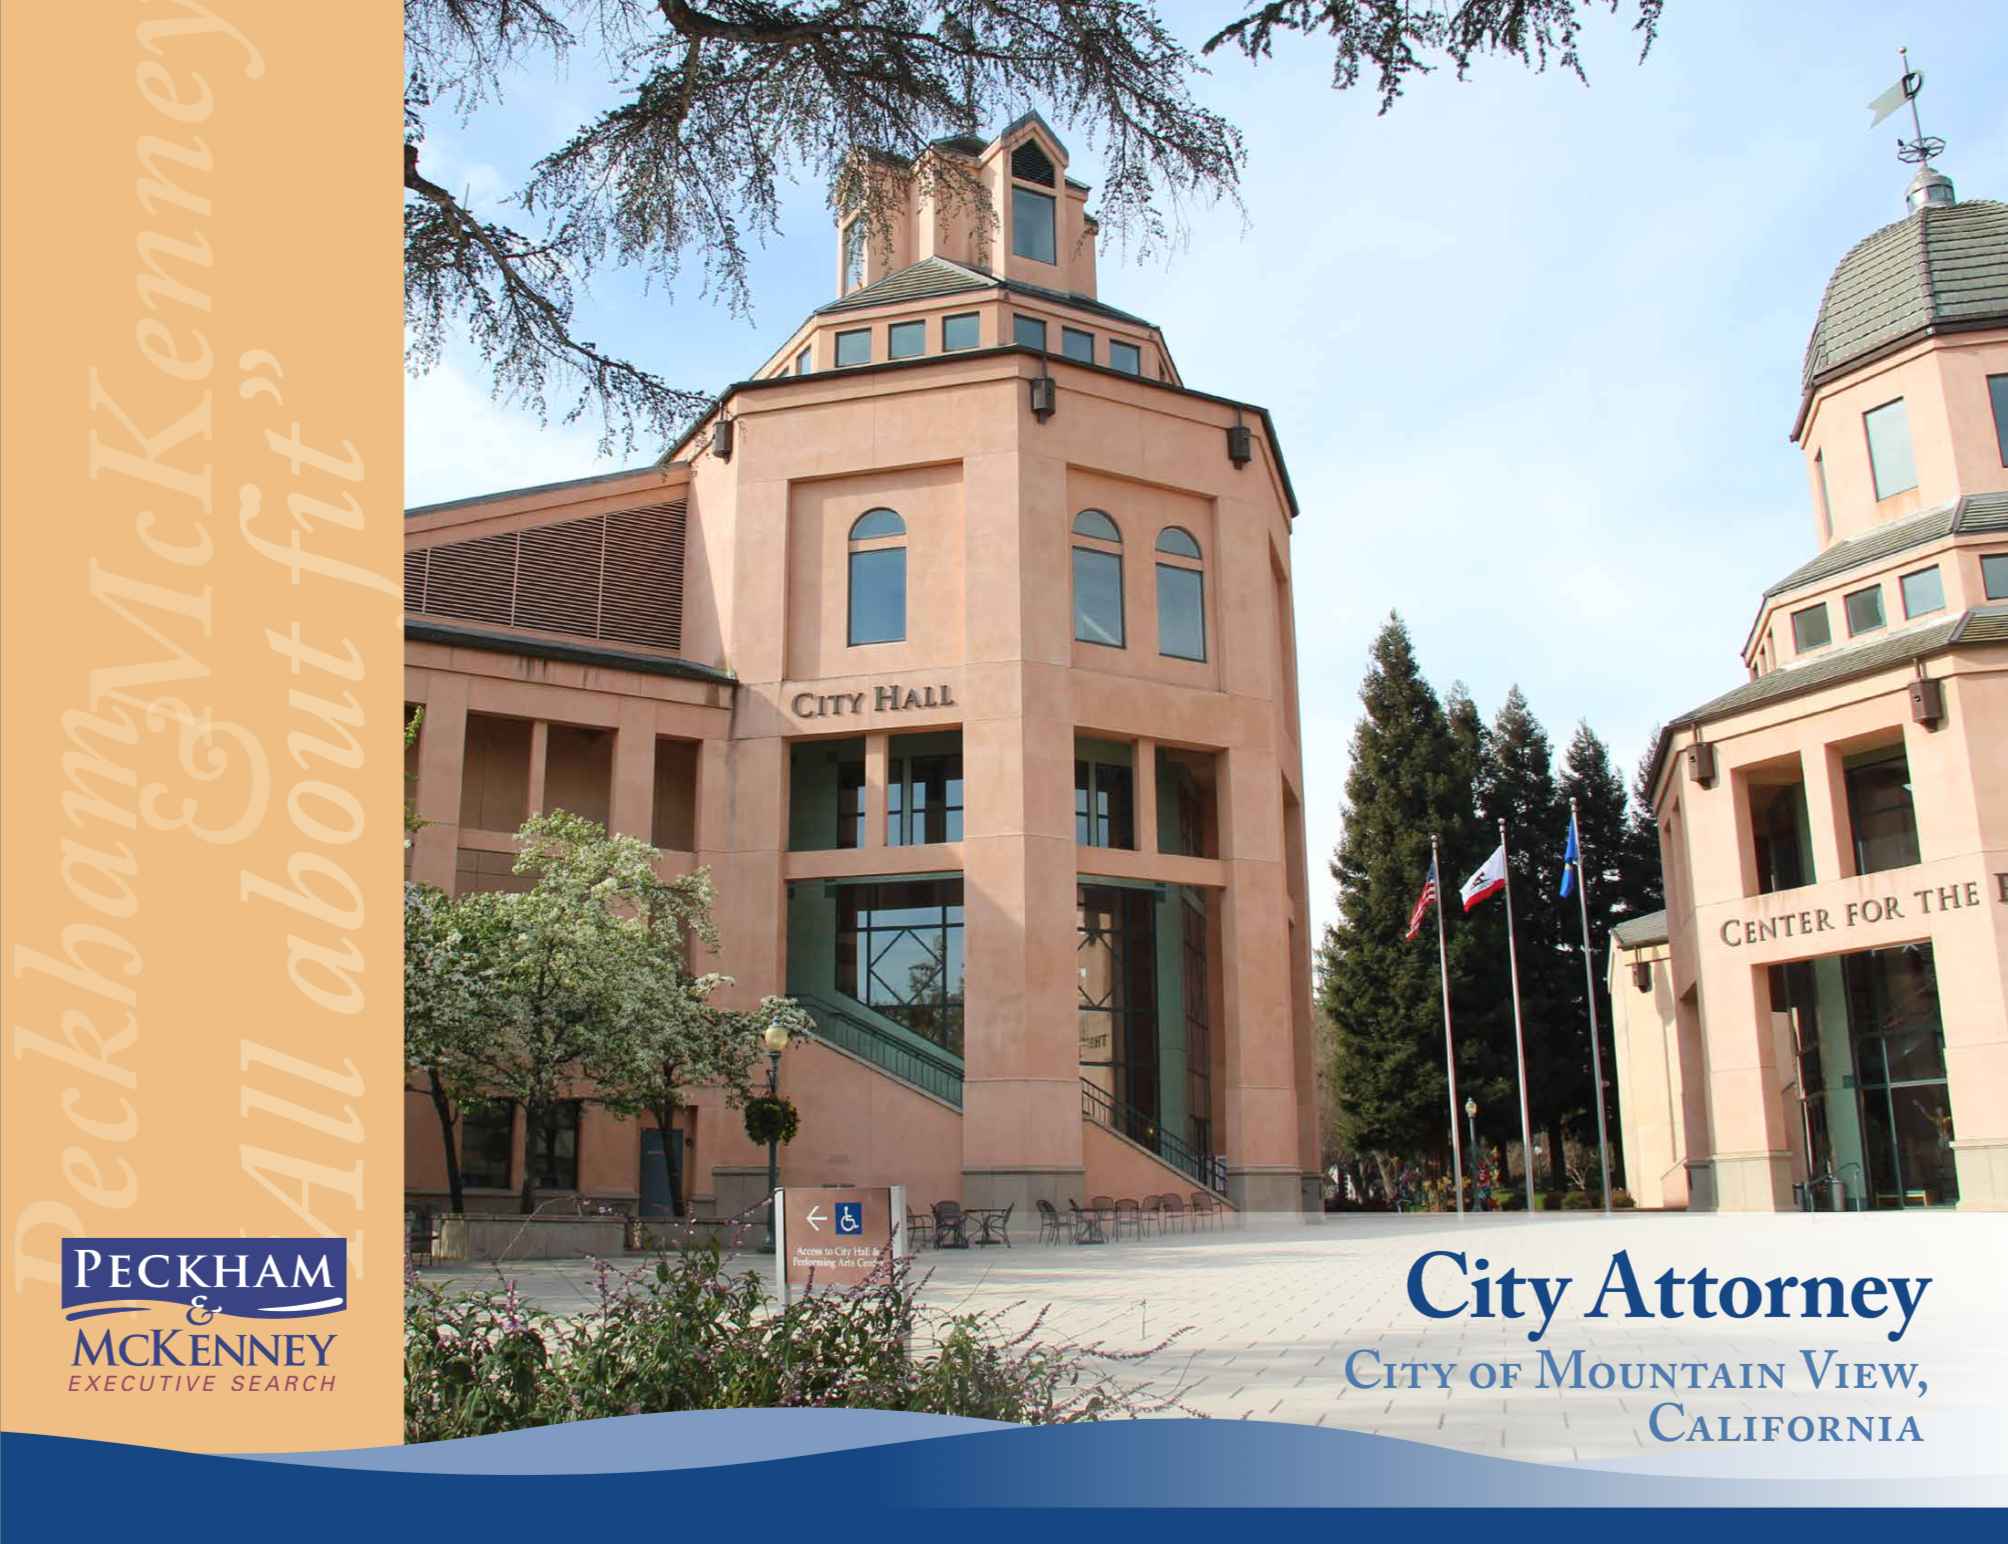 CityAttorney_MountainViewCA